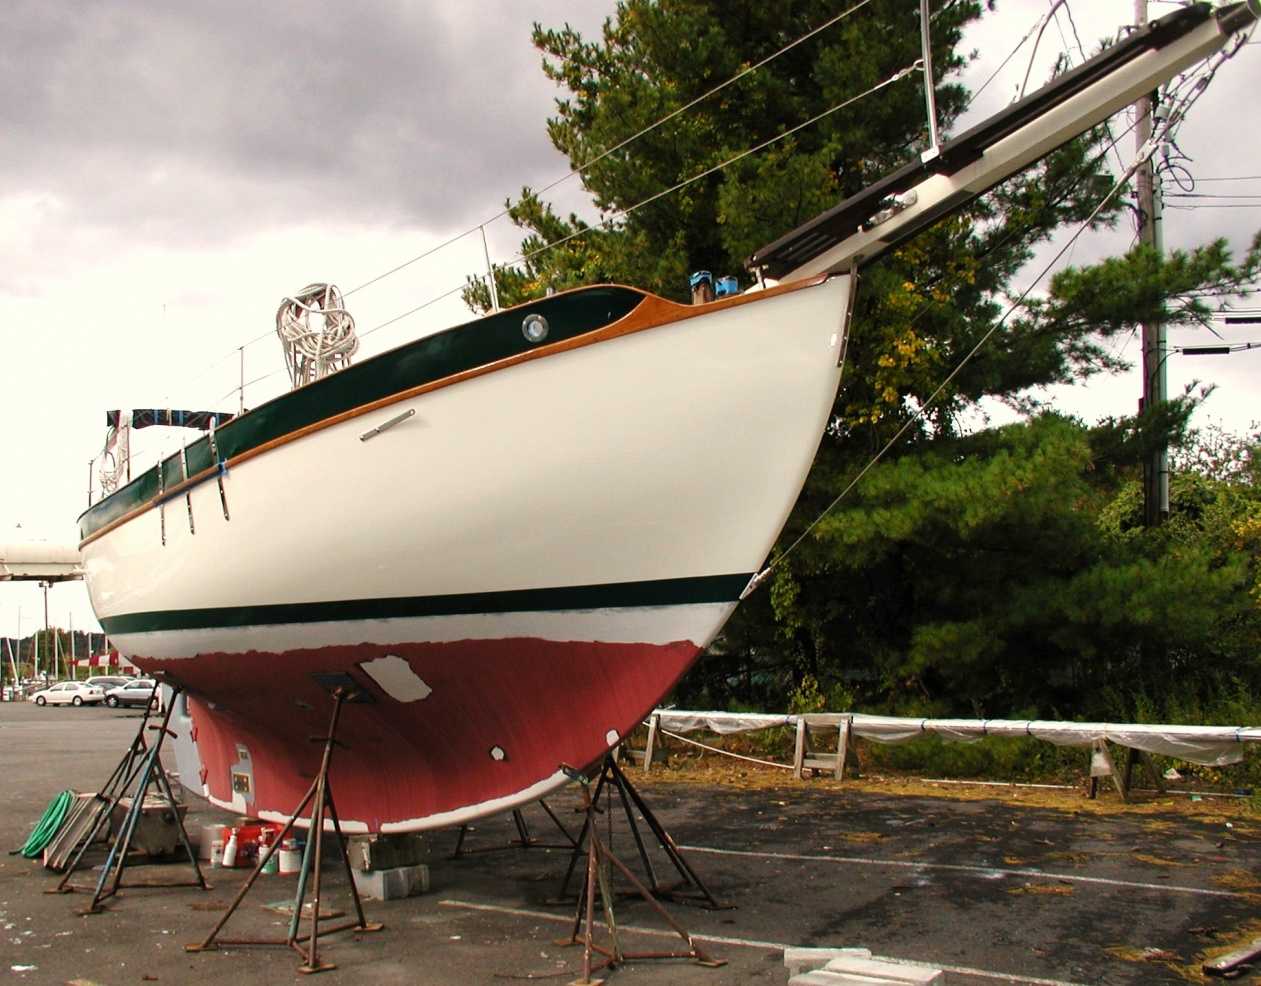 Click image for larger version  Name:This Old Boat.jpg Views:75 Size:446.5 KB ID:20969